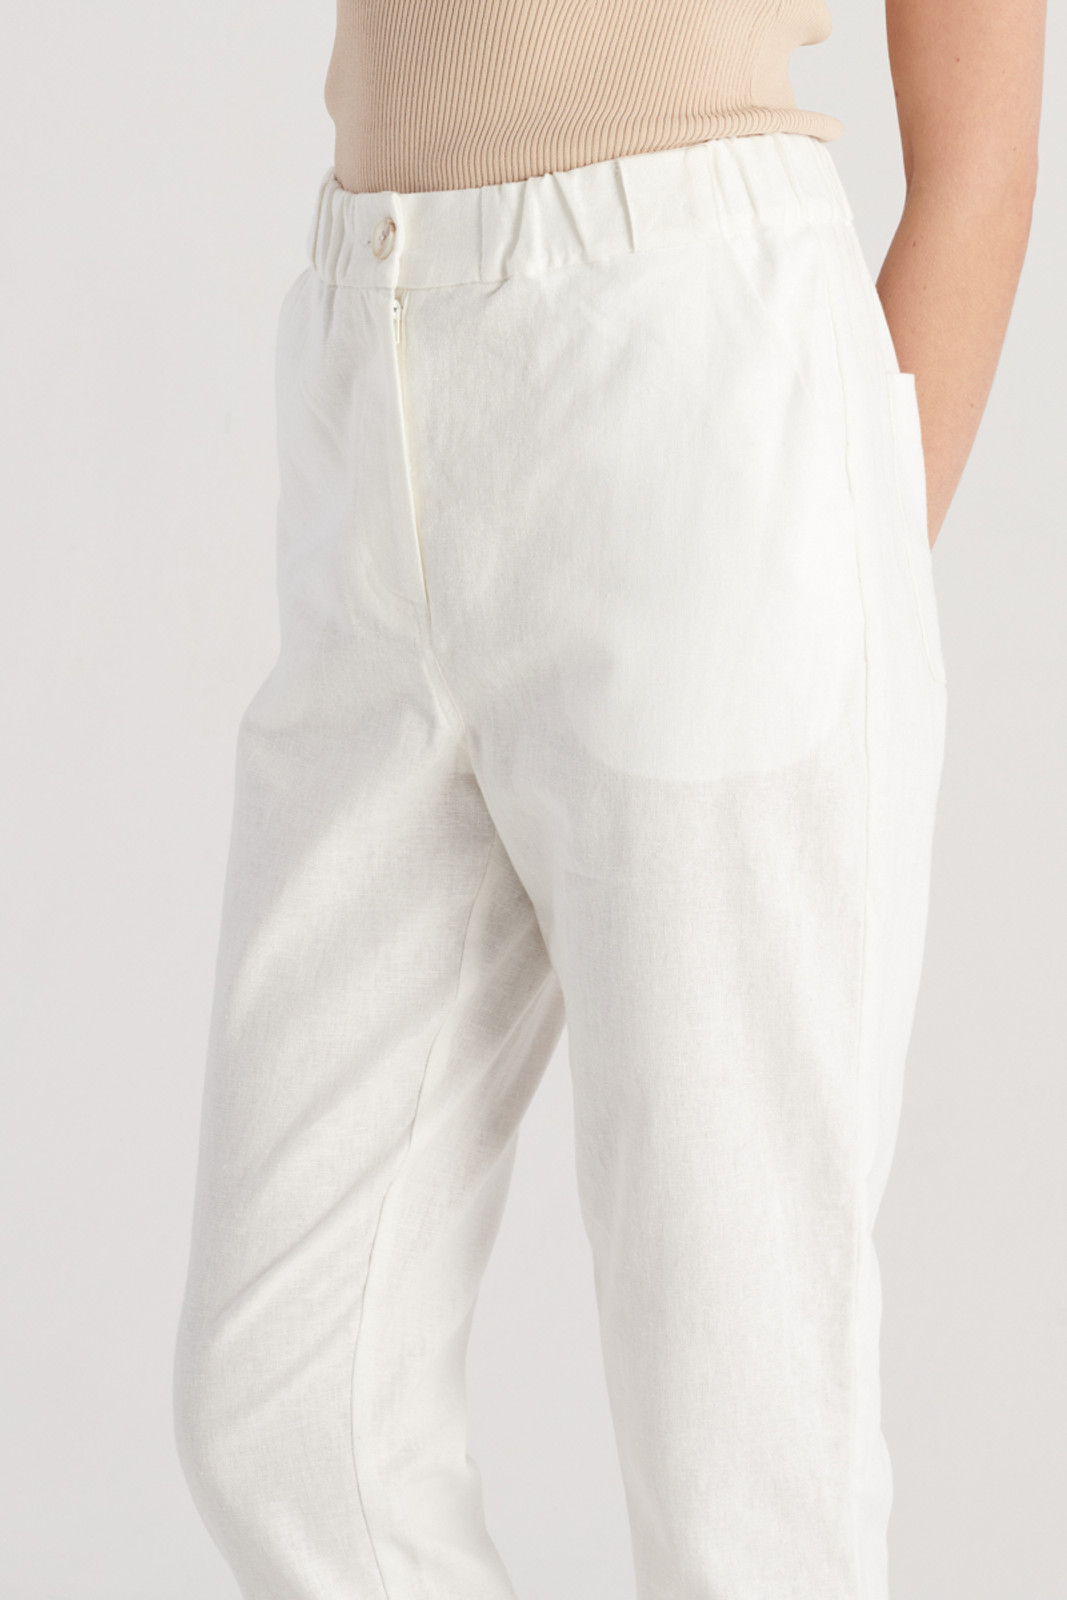 Elka Collective Womens White Margot Pant 5